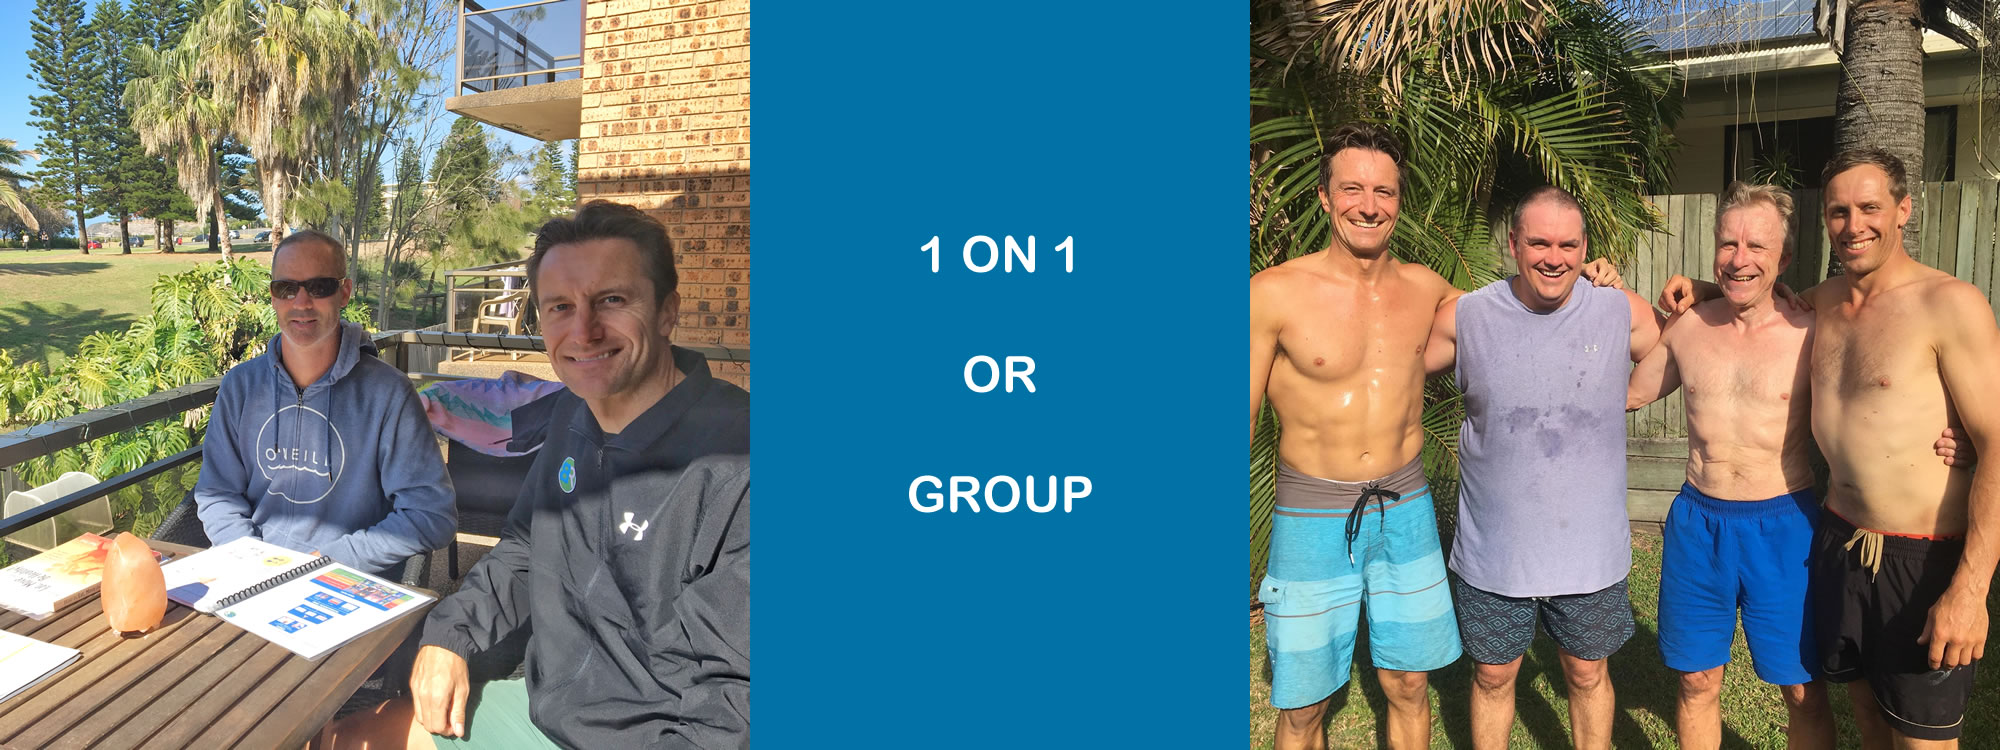 1 on 1 / Group